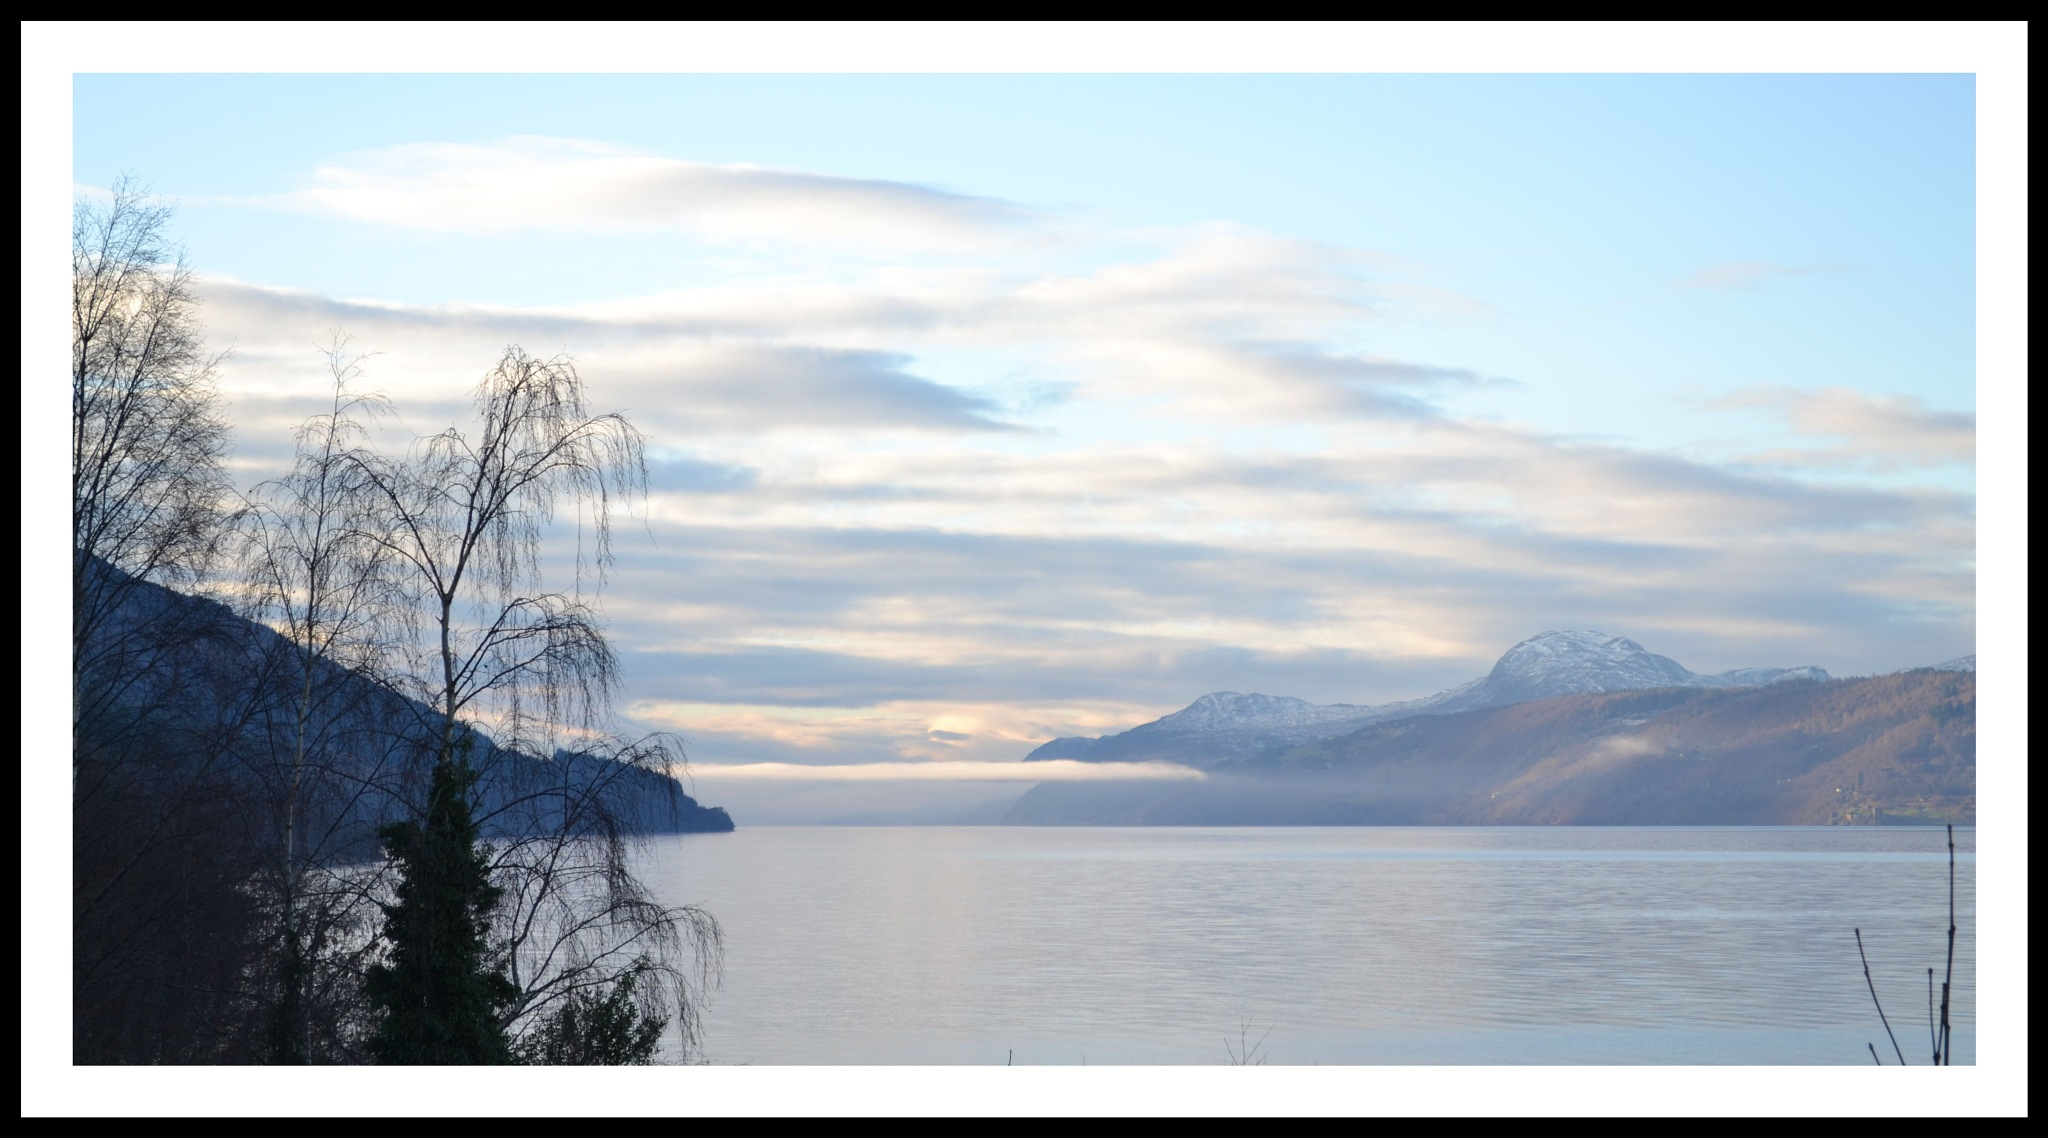 Loch Ness by Mandy Daniels